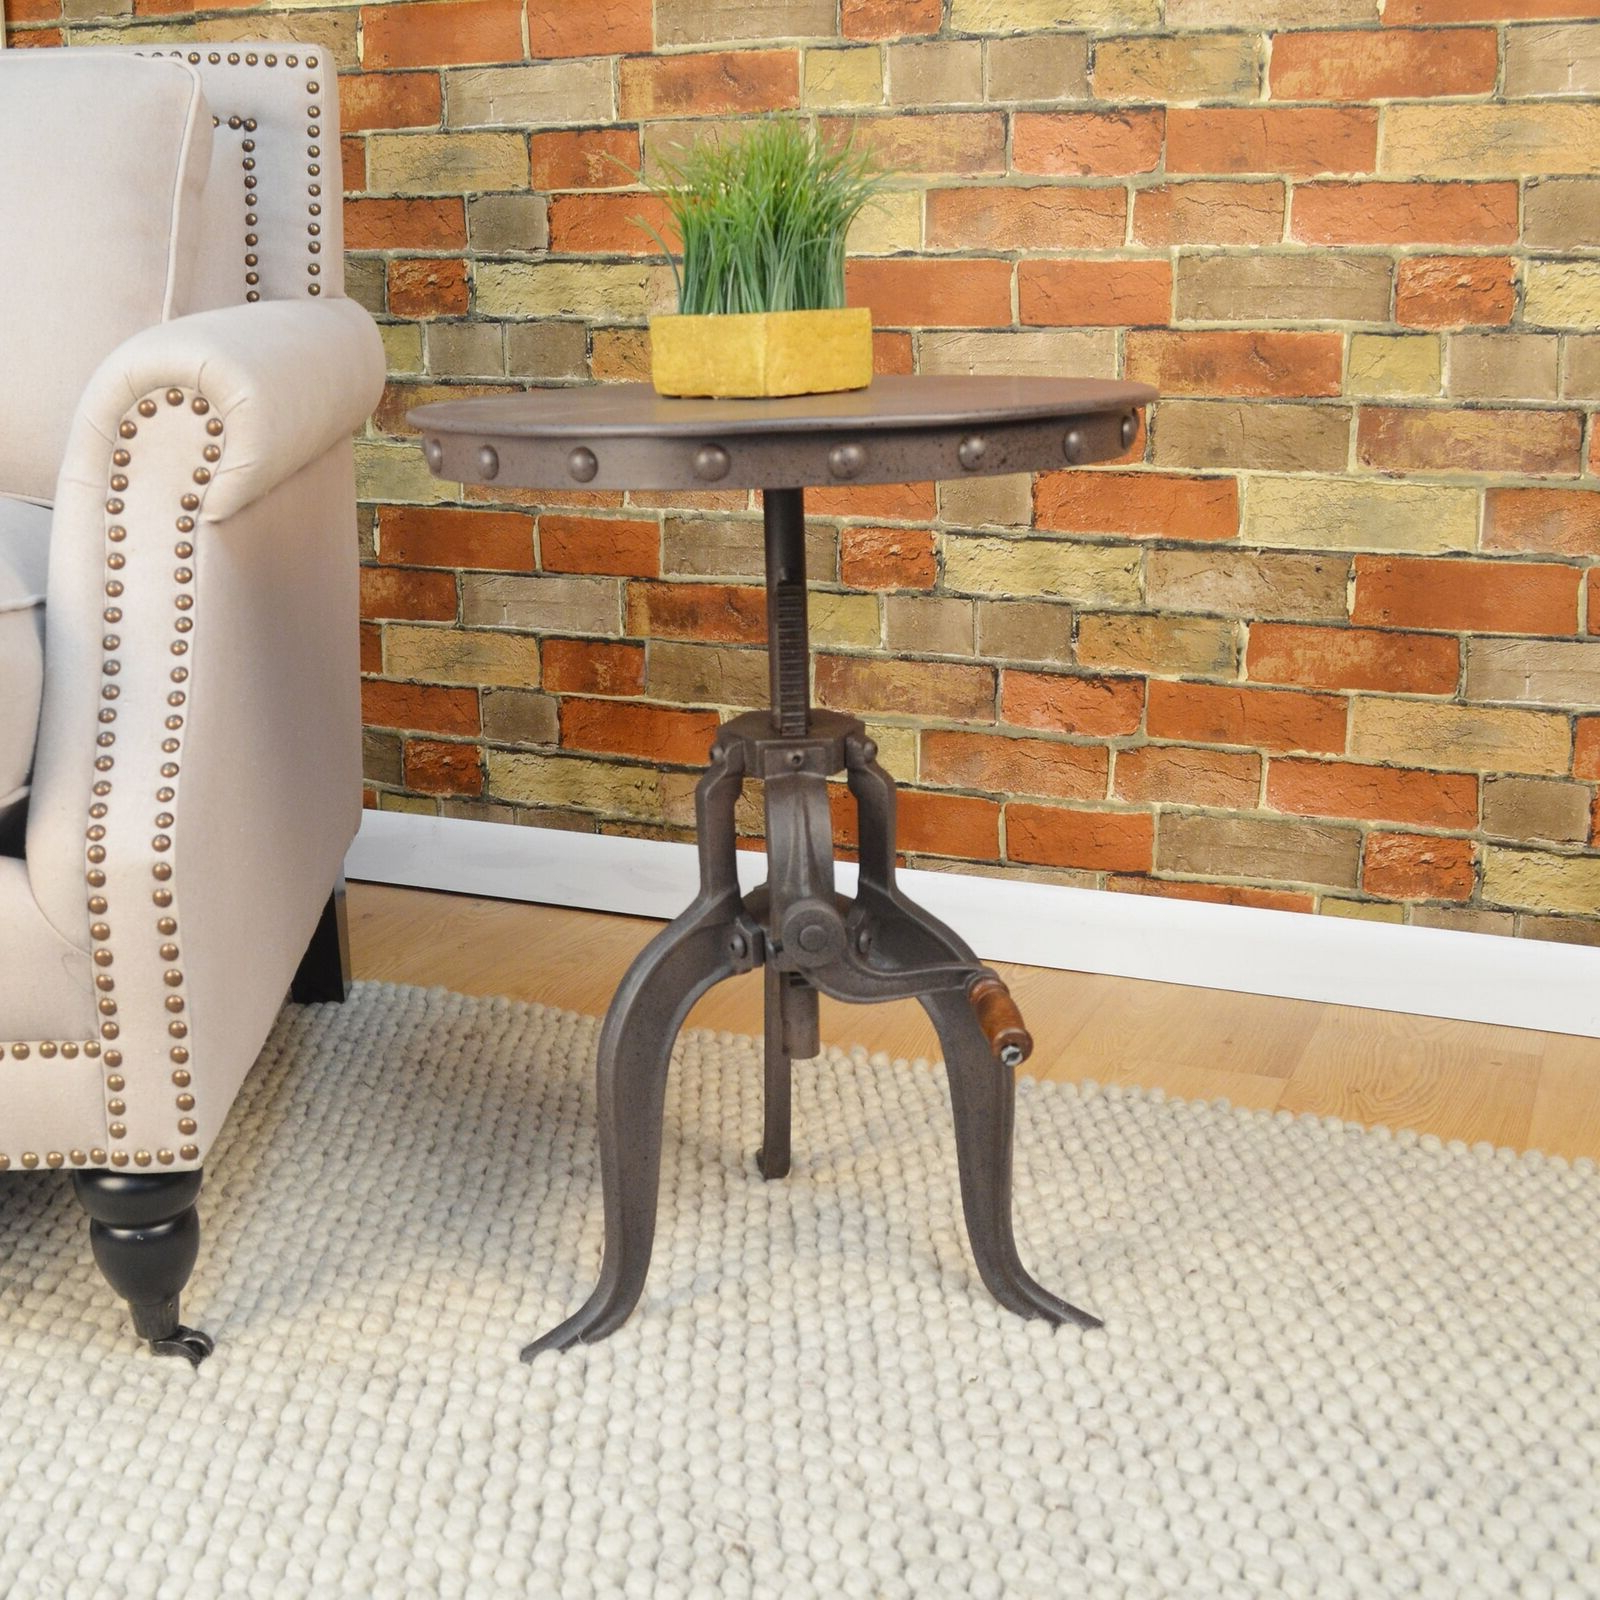 Carbon Loft Baird Cast Iron/metal Adjustable Crank Accent Table Sofa Coffee  Il Throughout Popular Carbon Loft Enjolras Wood Steel Coffee Tables (View 2 of 20)